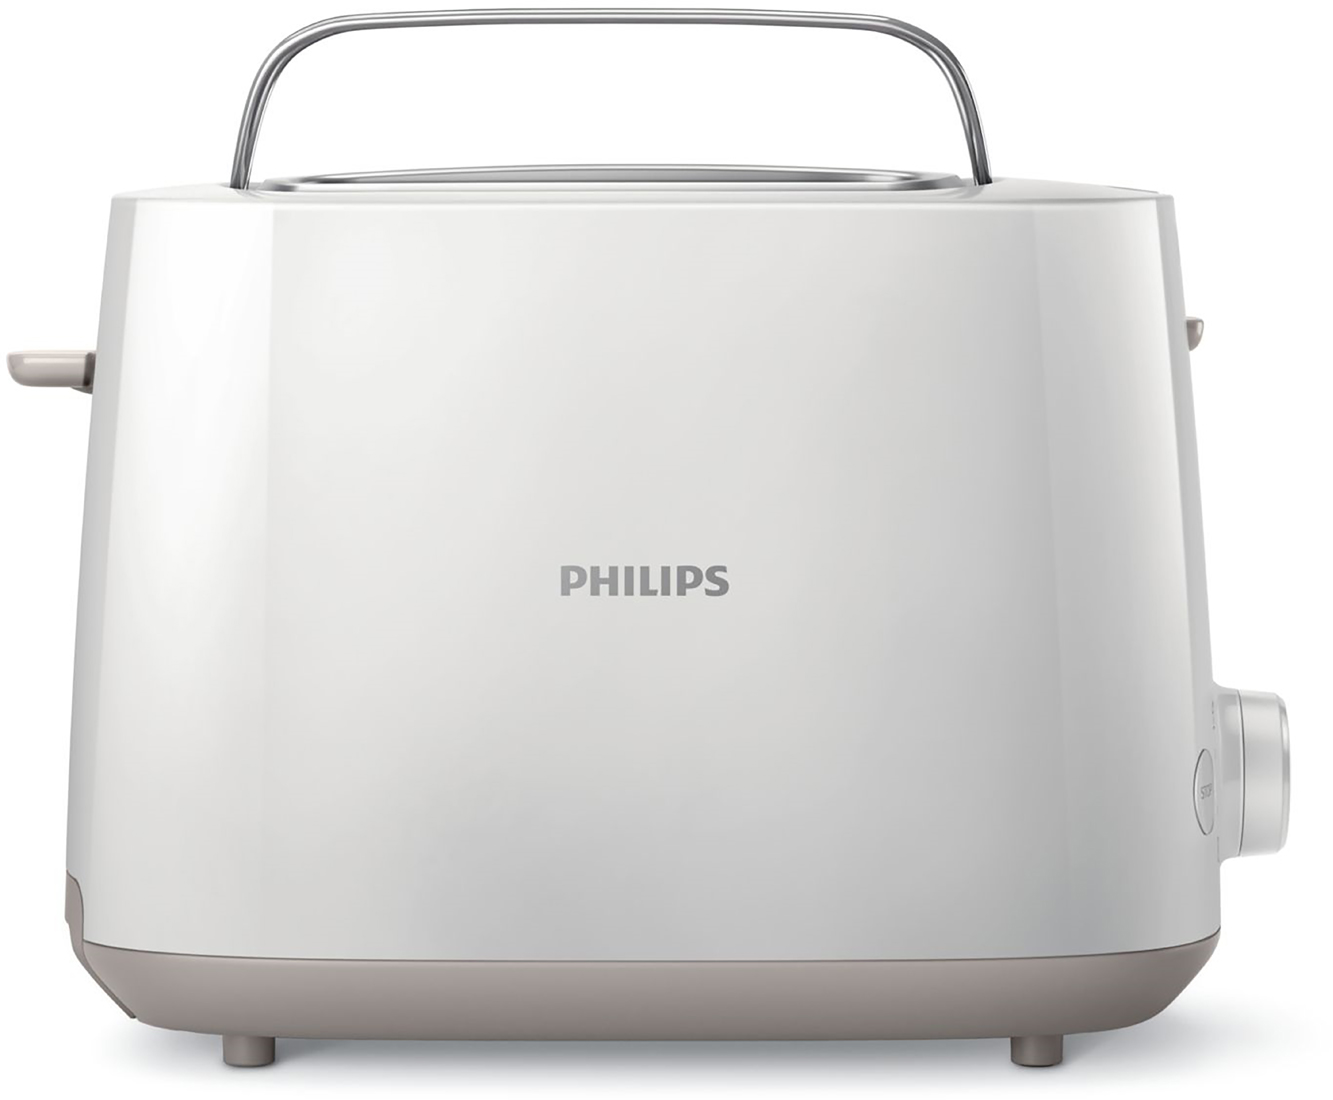 Philips Daily Collection HD2581/00 Wasserkocher & Toaster - Weiss